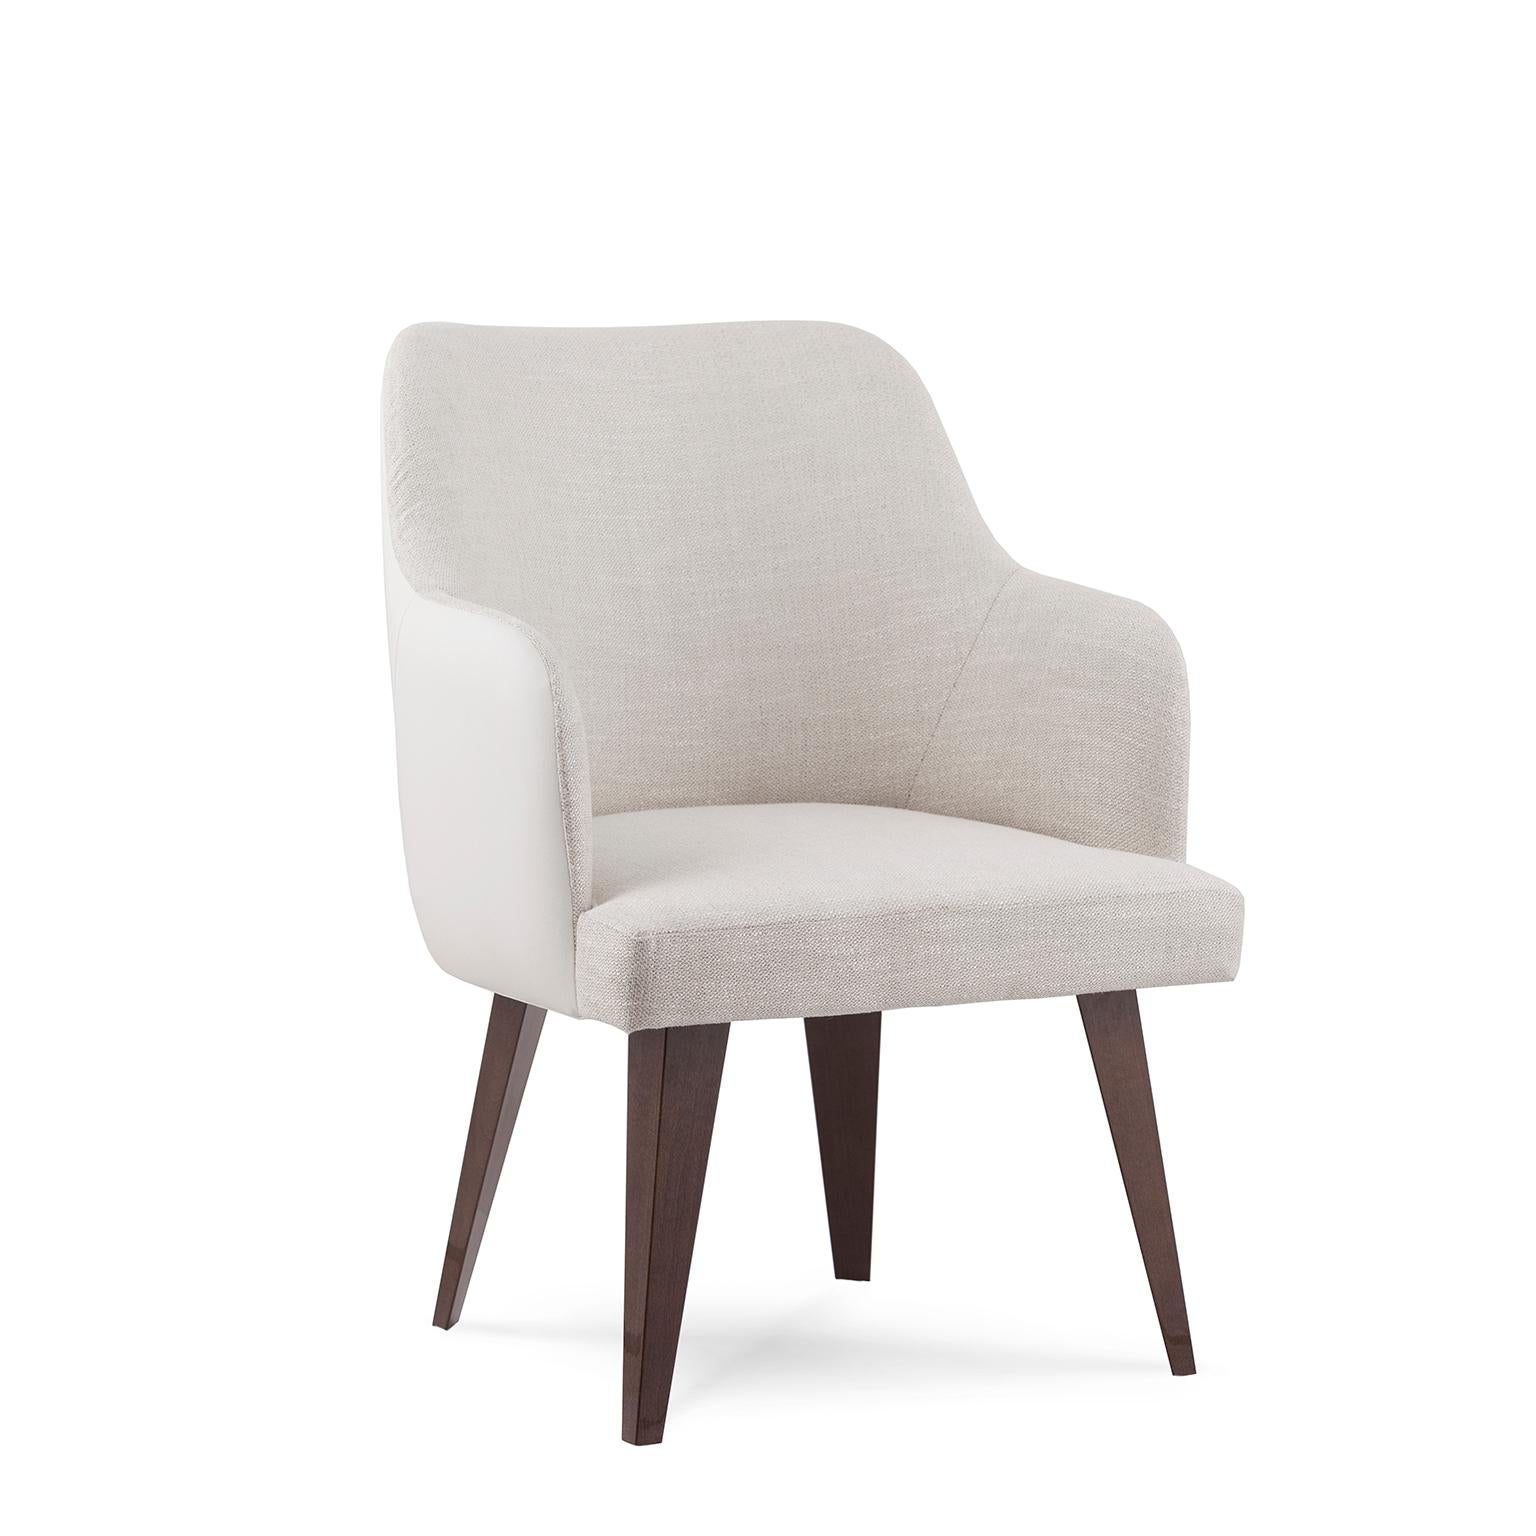 Margot Chair Brown Stained Beech White Faux Leather Beige Cotton-Linen Fabric